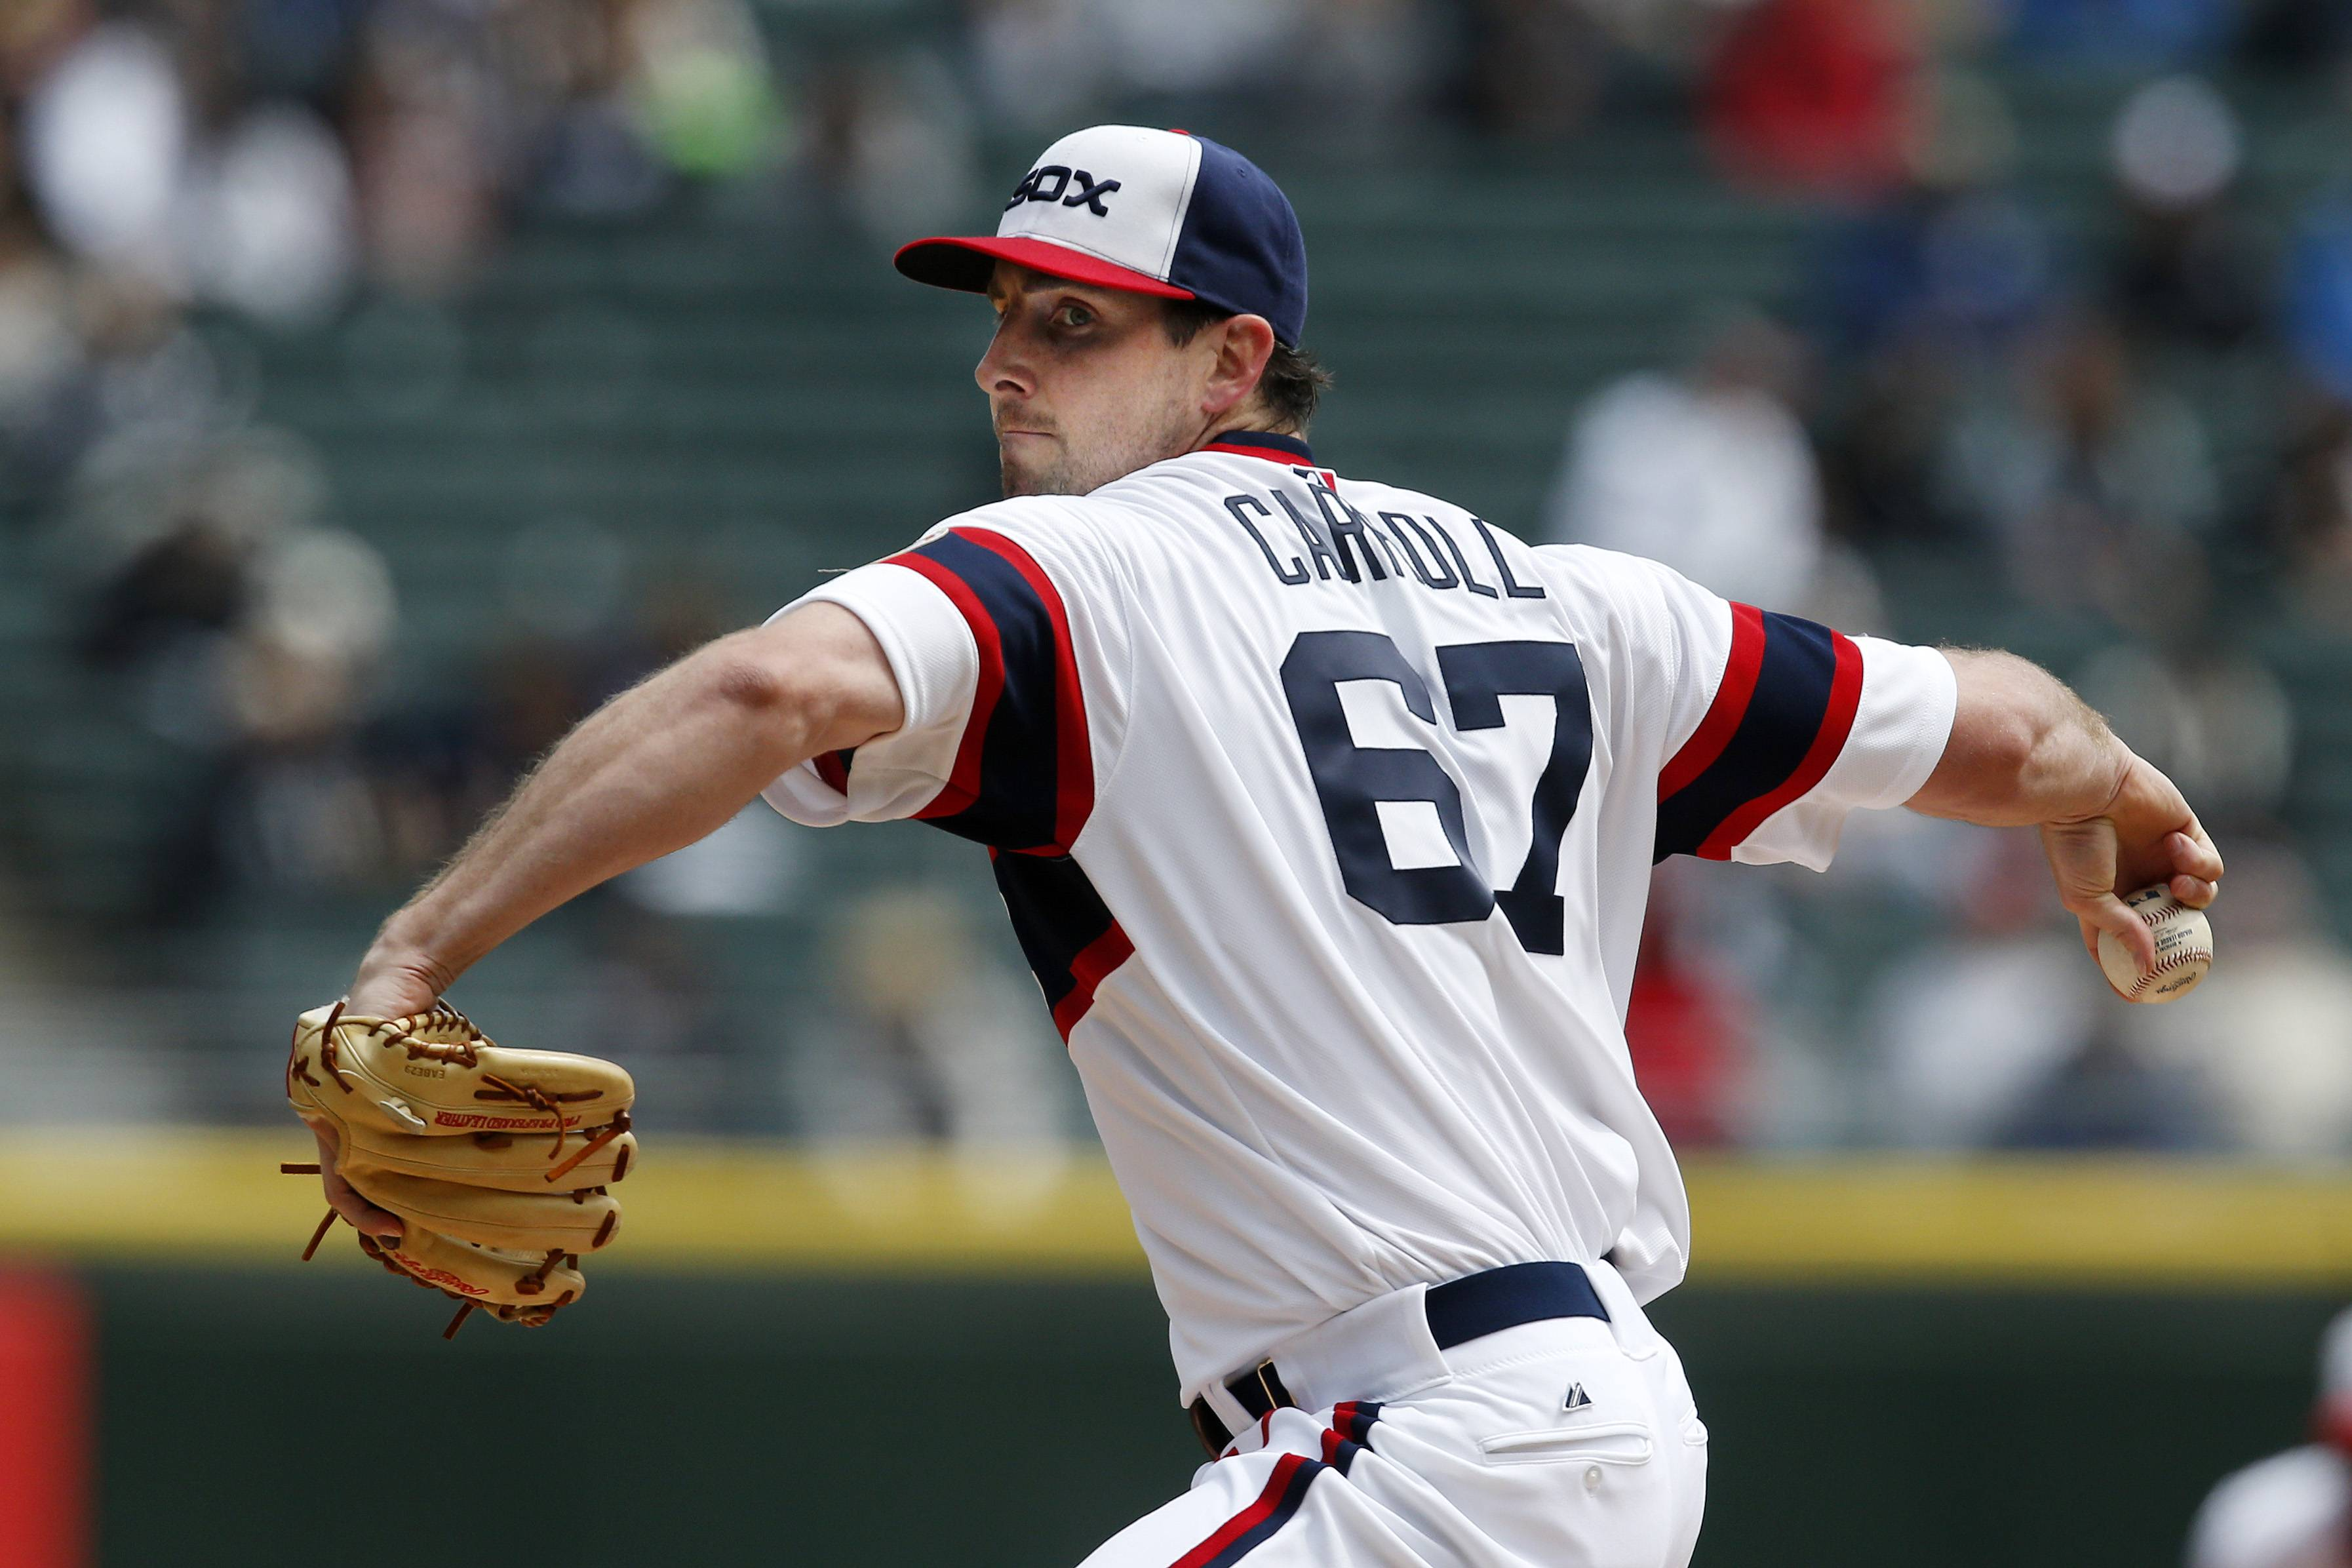 Making his first start for the White Sox, Scott Carroll breezed through 7⅓ innings and allowed 2 runs (1 earned) on 6 hits and 2 walks while throwing a very efficient 100 pitches against the Tampa Bay Rays at U.S. Cellular Field on Sunday.